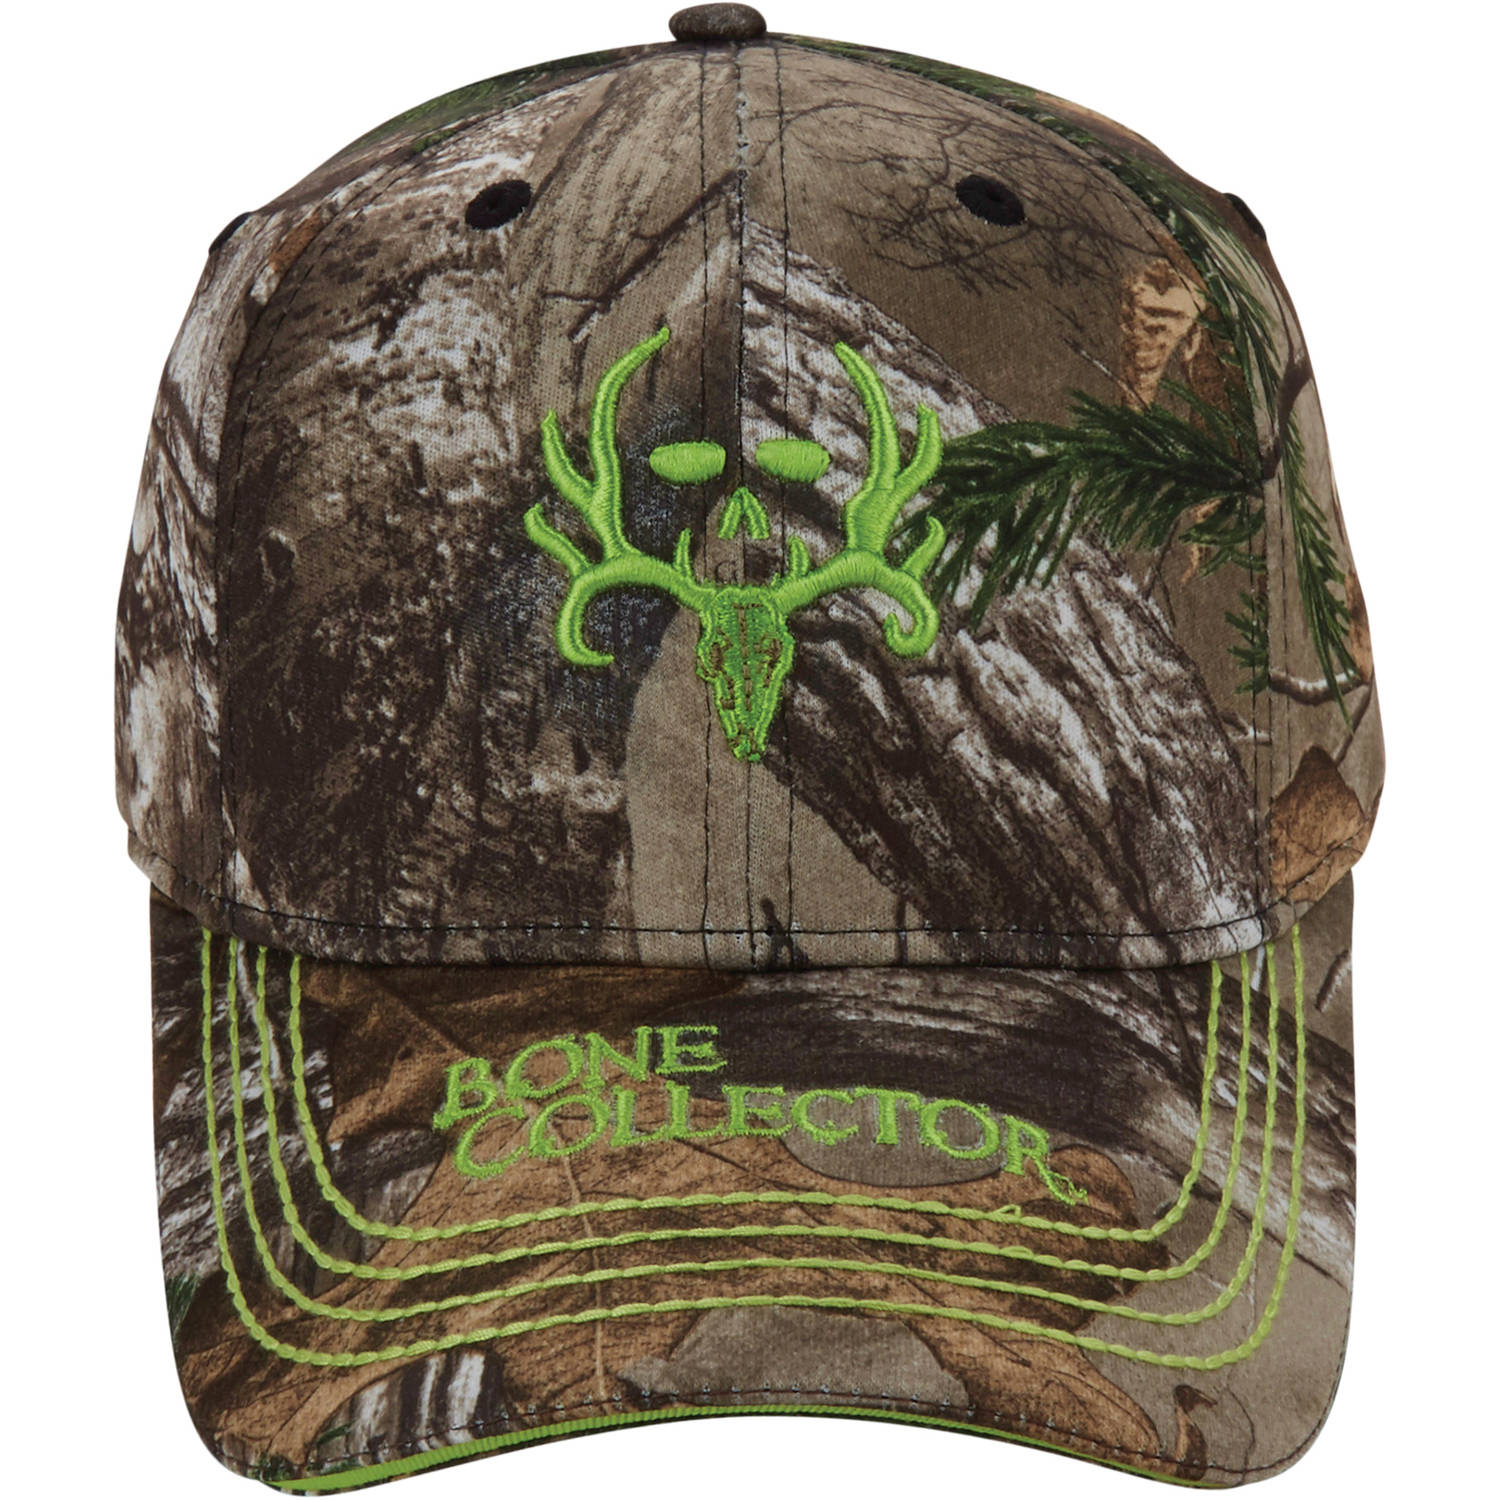 Bone Collector Camo Green Logo Cap, Realtree Xtra Camo